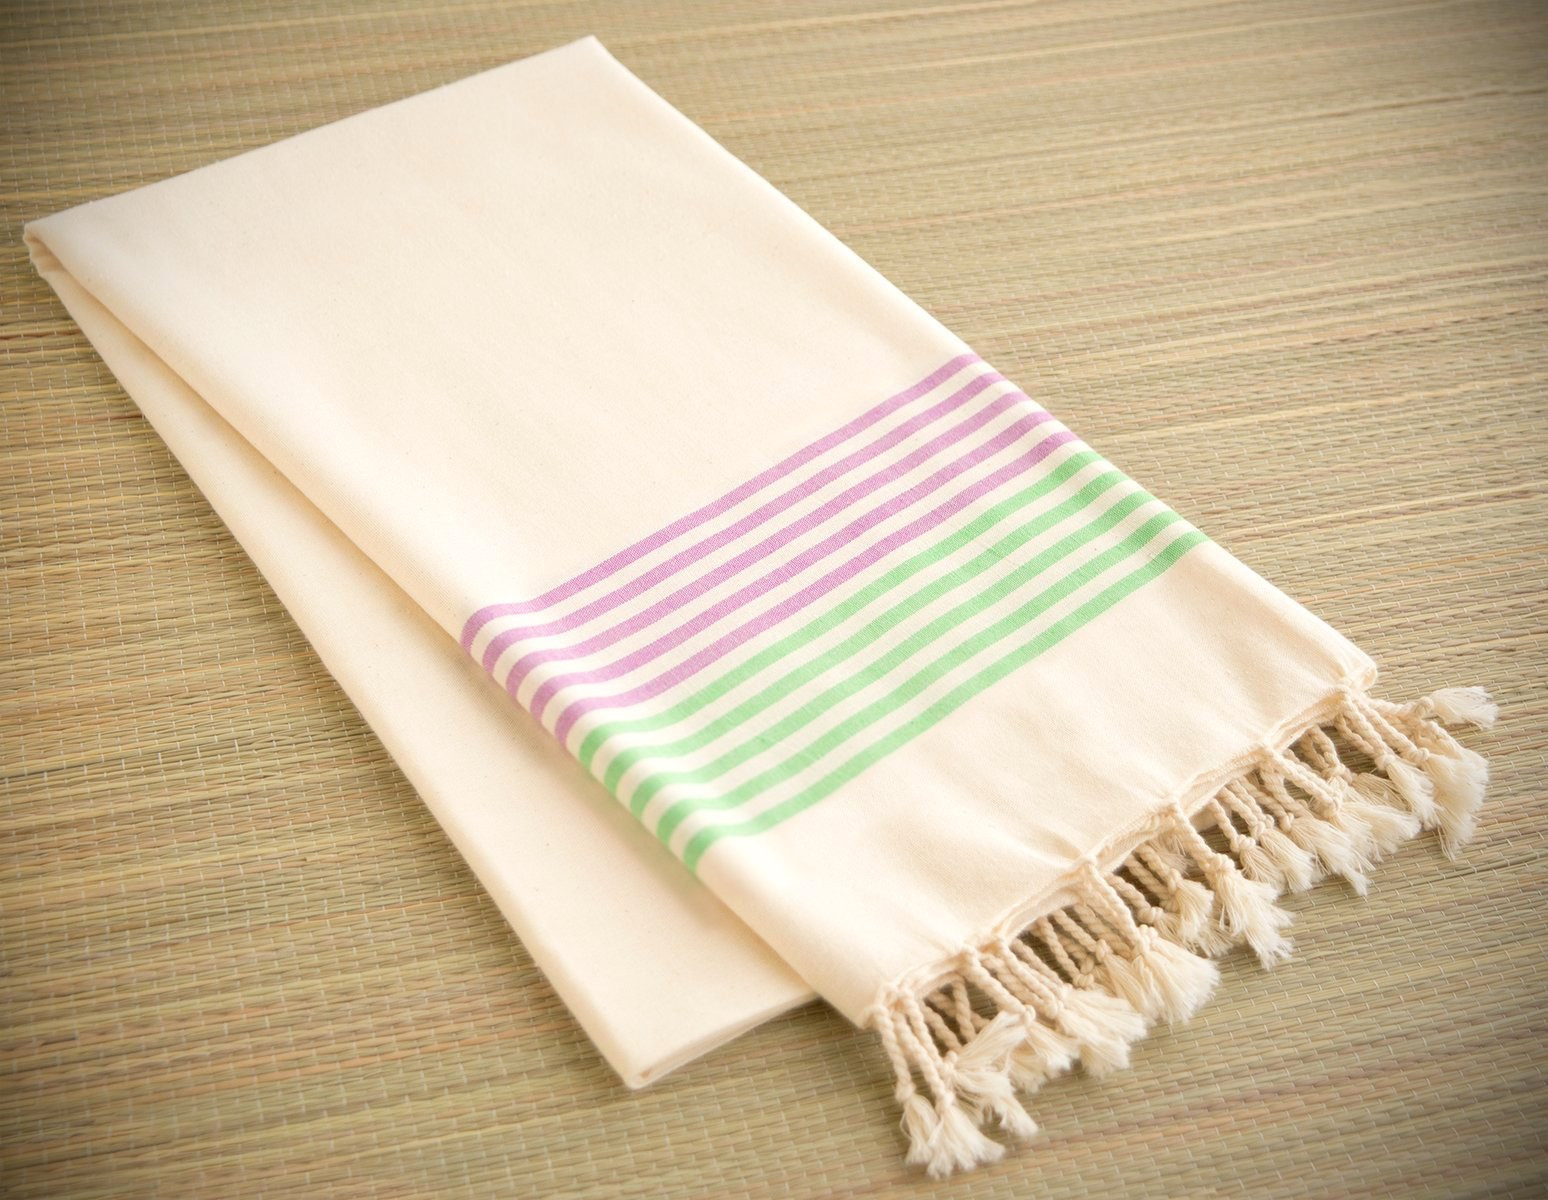 Striped Cotton Peshtemal Towel - Pink & Green